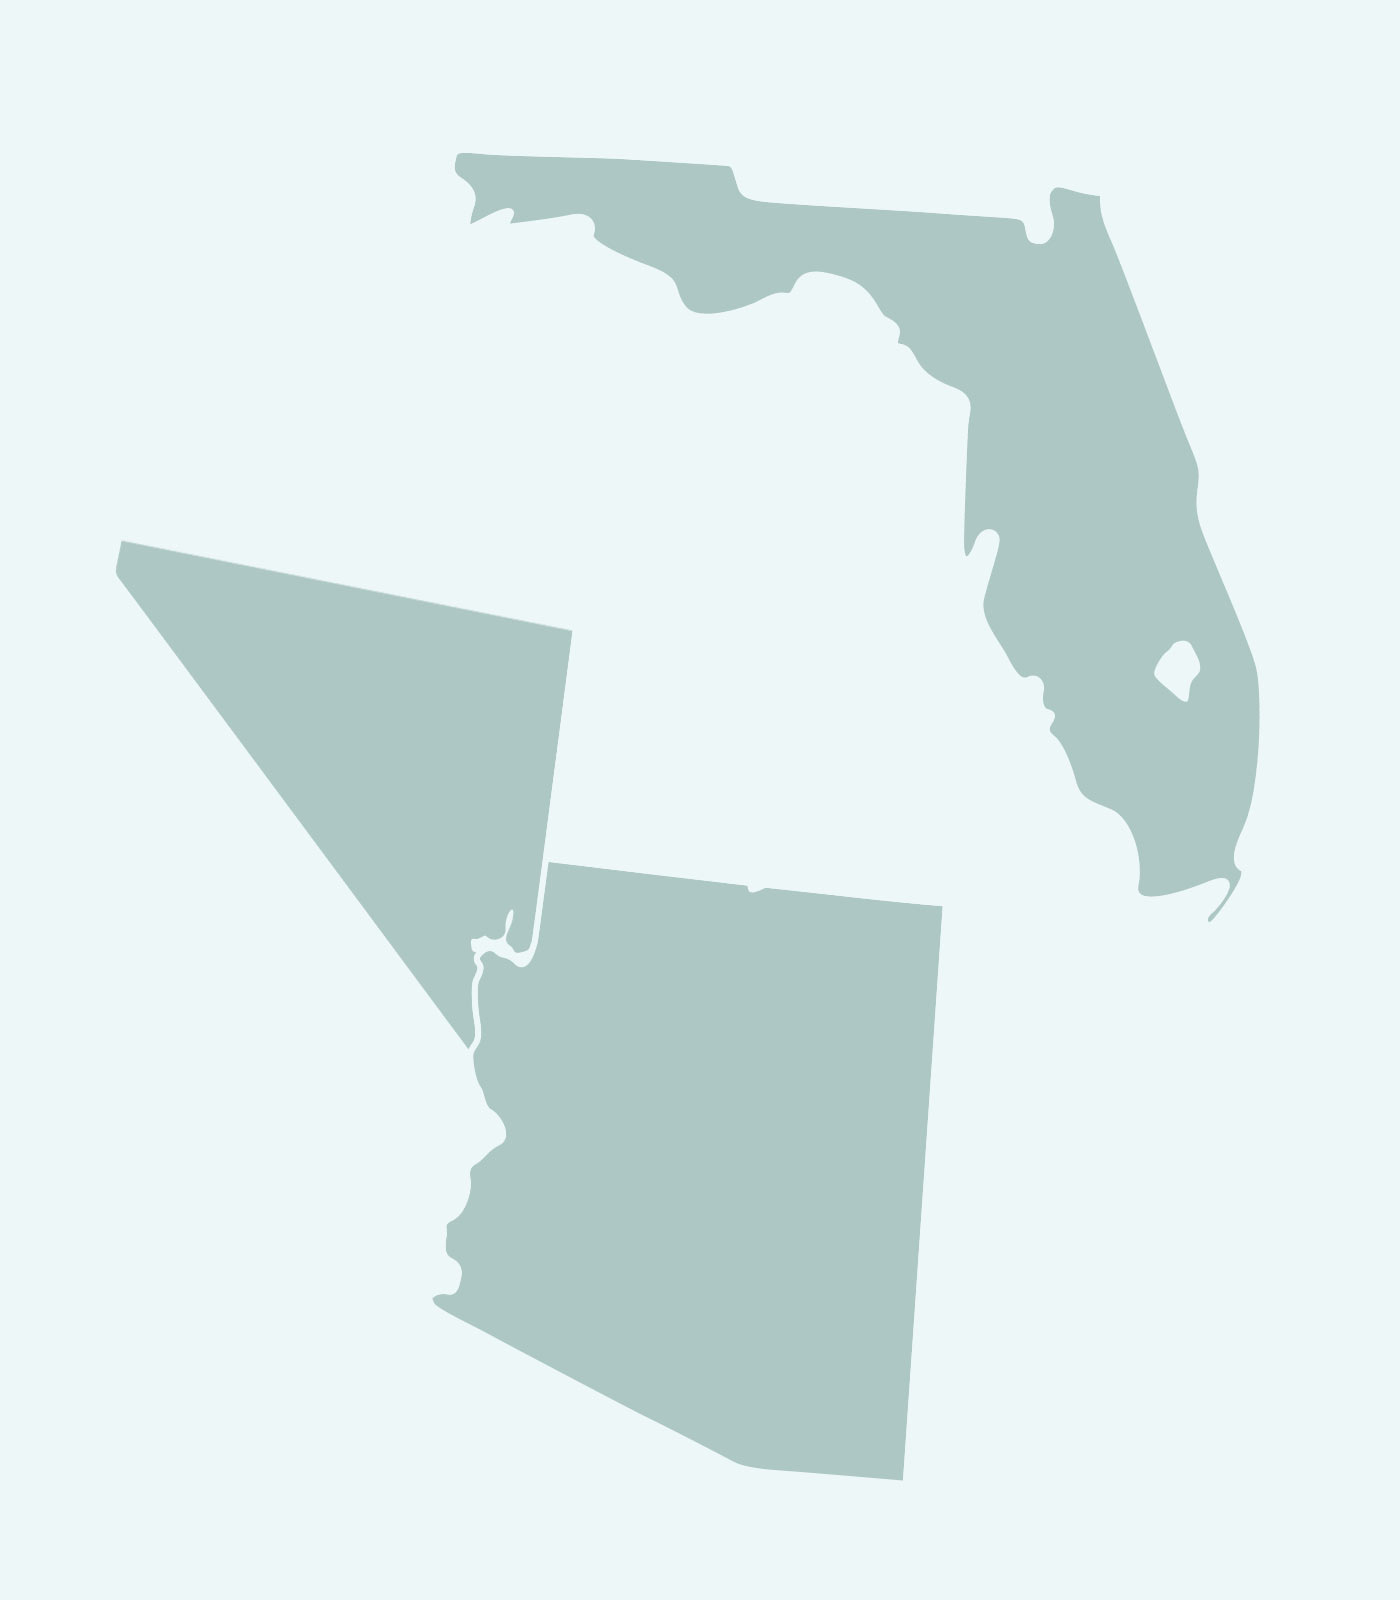 Sales Rep's Map of Florida, Arizona, Nevada Line Keren Hart